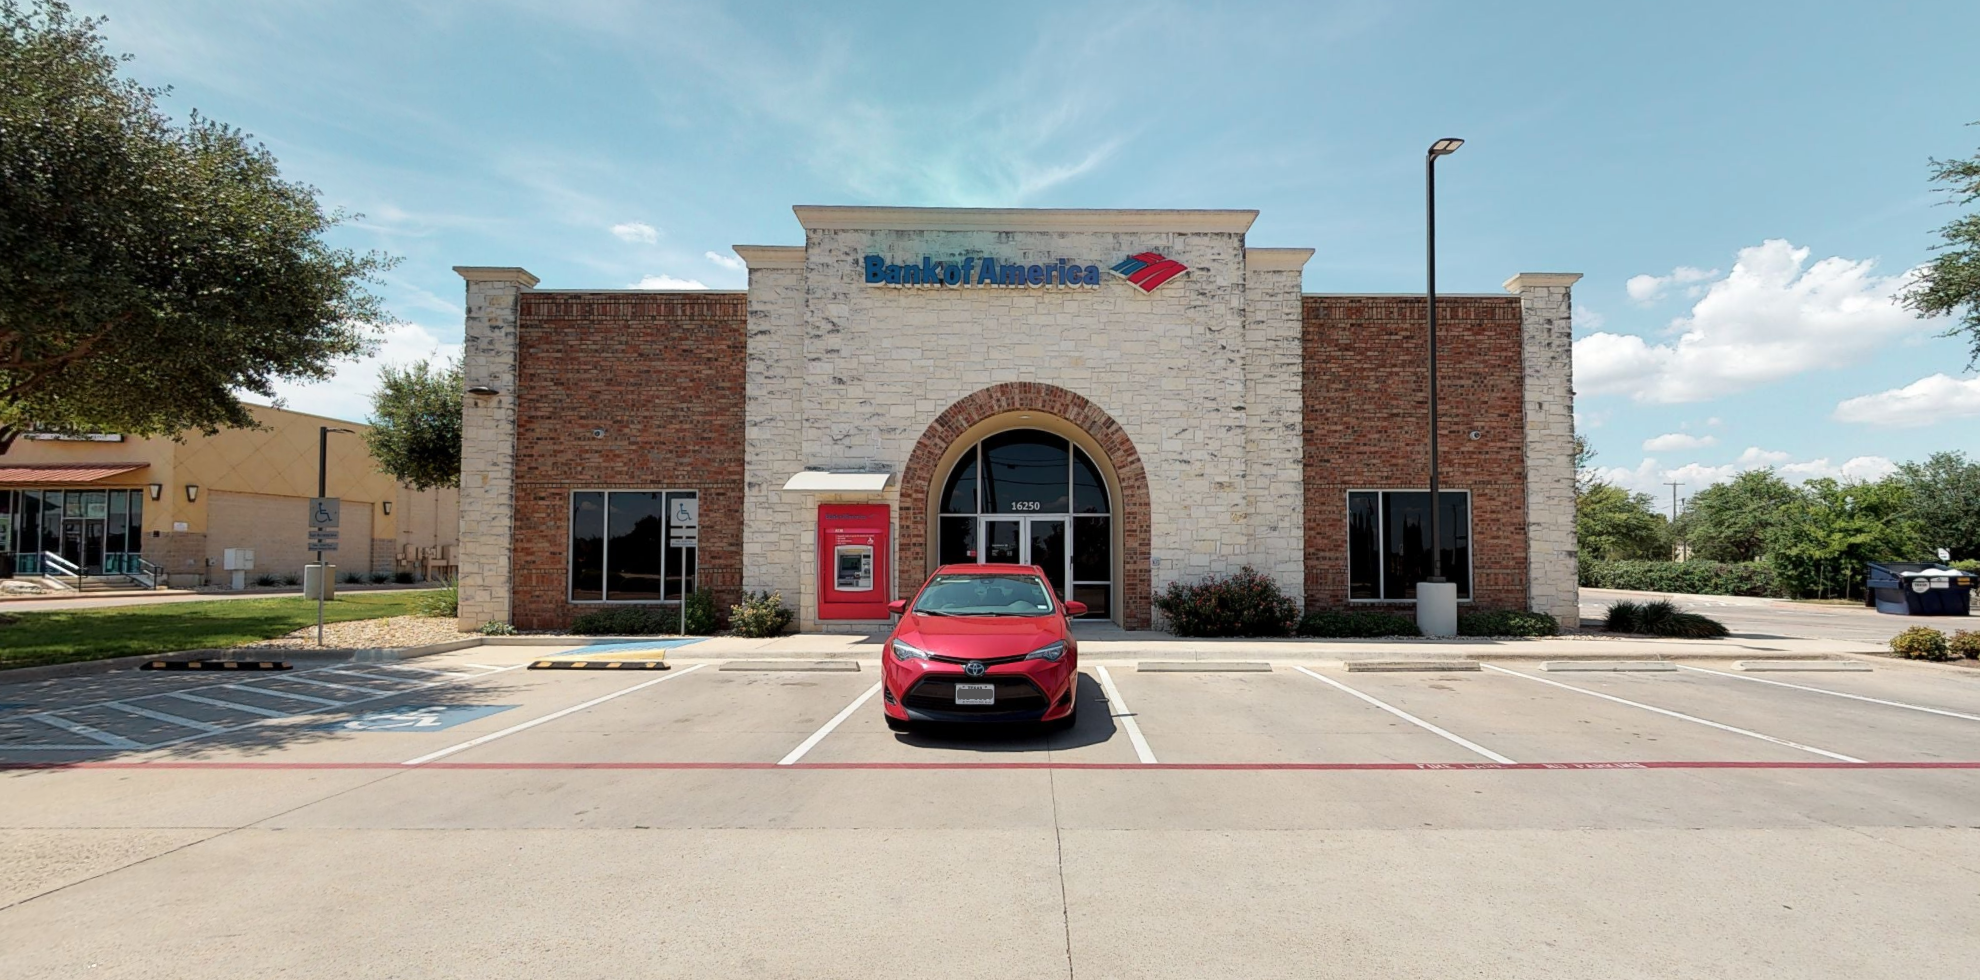 Bank of America financial center with drive-thru ATM   16250 Ranch Road 620 N, Austin, TX 78717